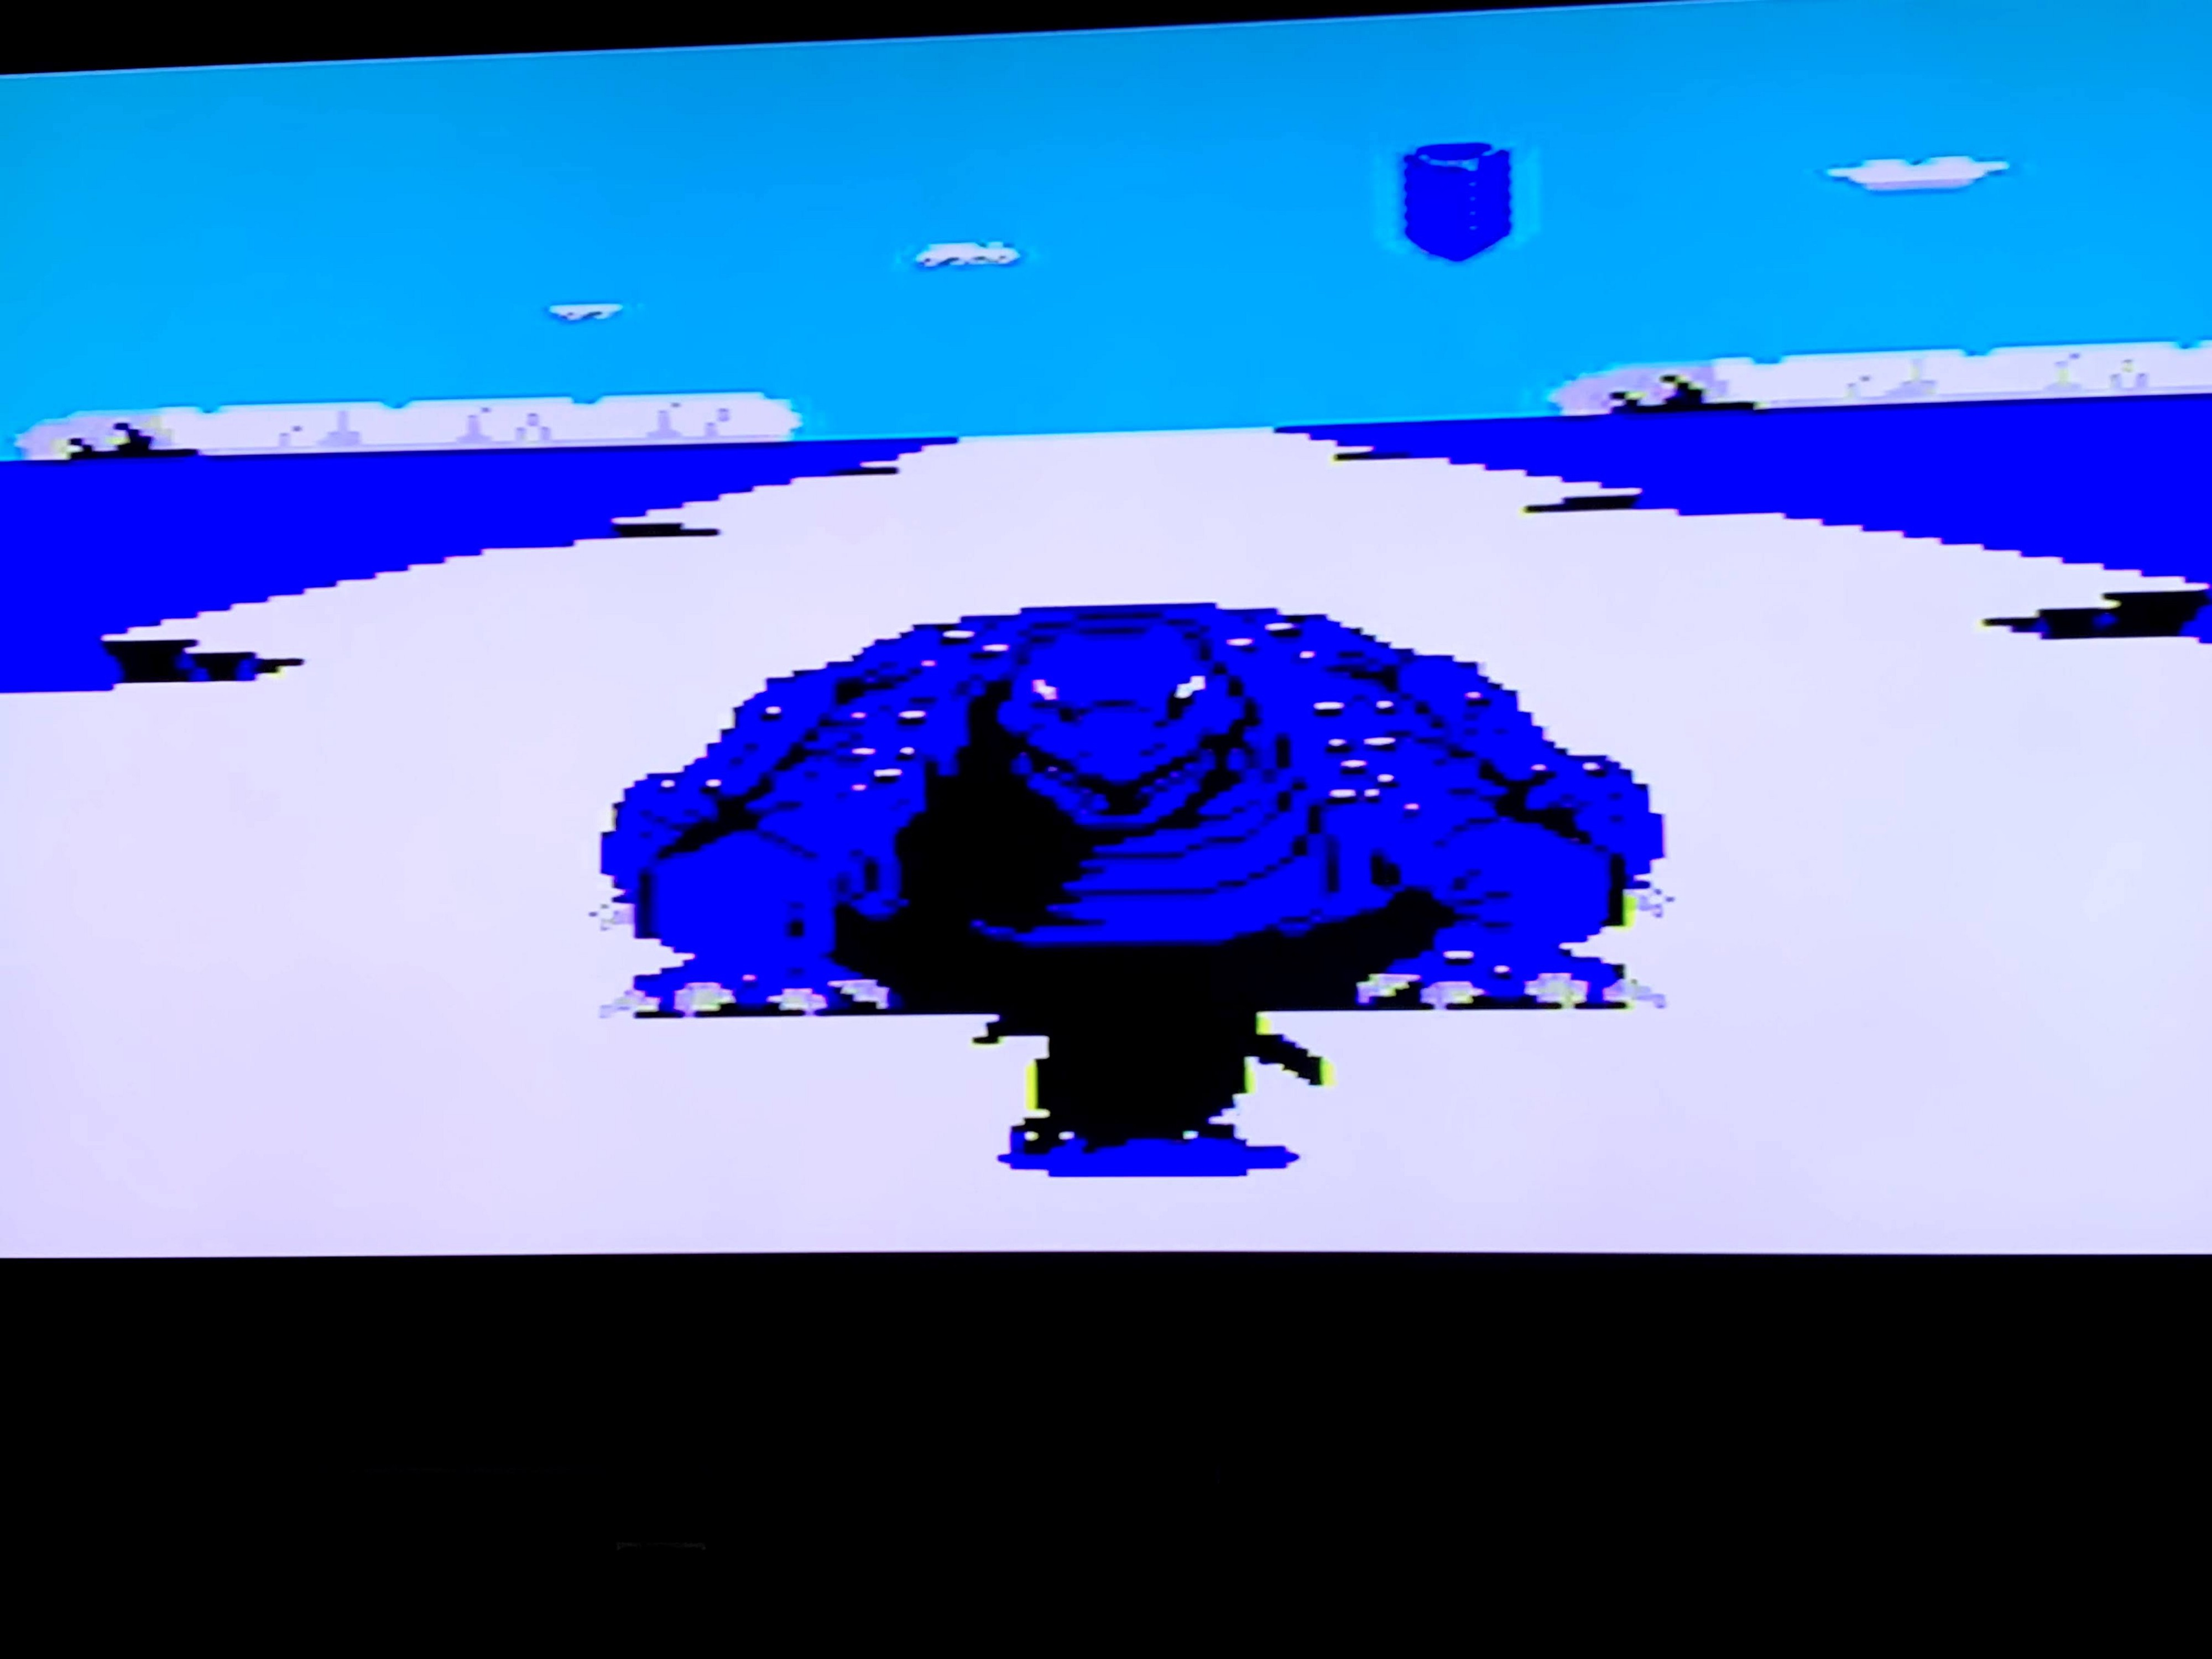 Blue Godzilla-like/lizard creature that the penguin encounters in the first boss level.